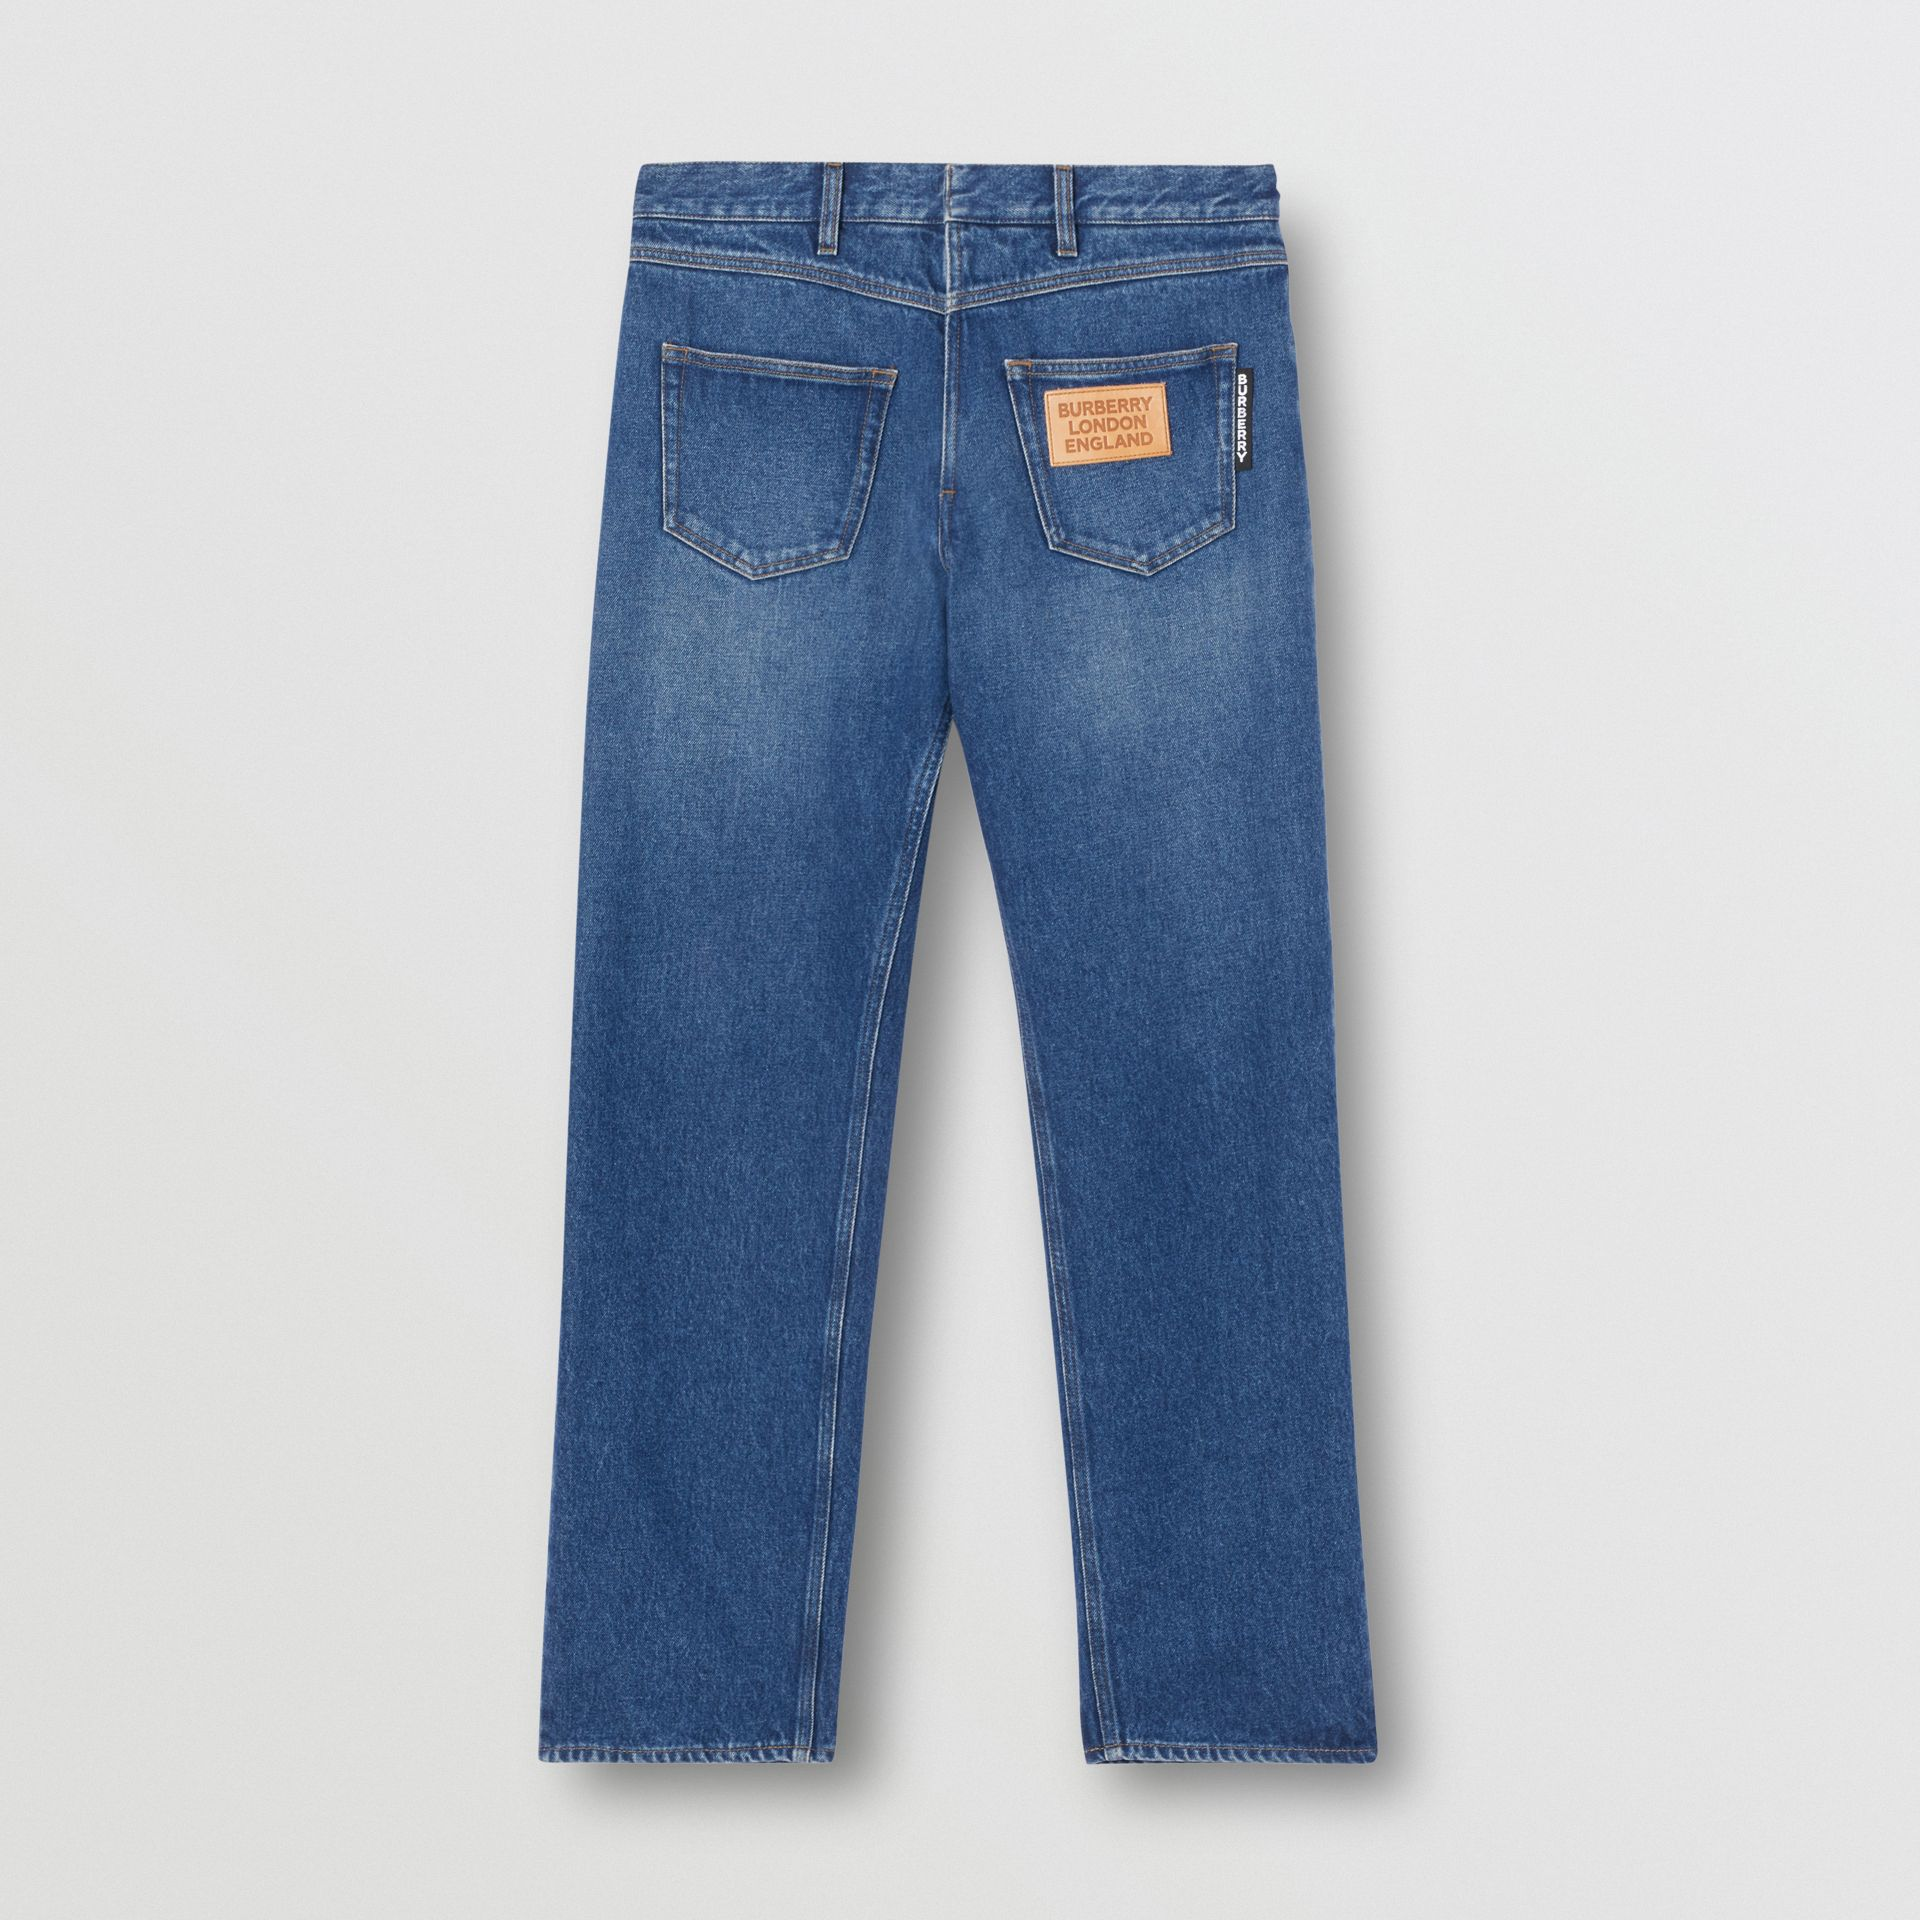 Relaxed Fit Reconstructed Washed Denim Jeans in Indigo Blue - Men | Burberry United Kingdom - gallery image 3